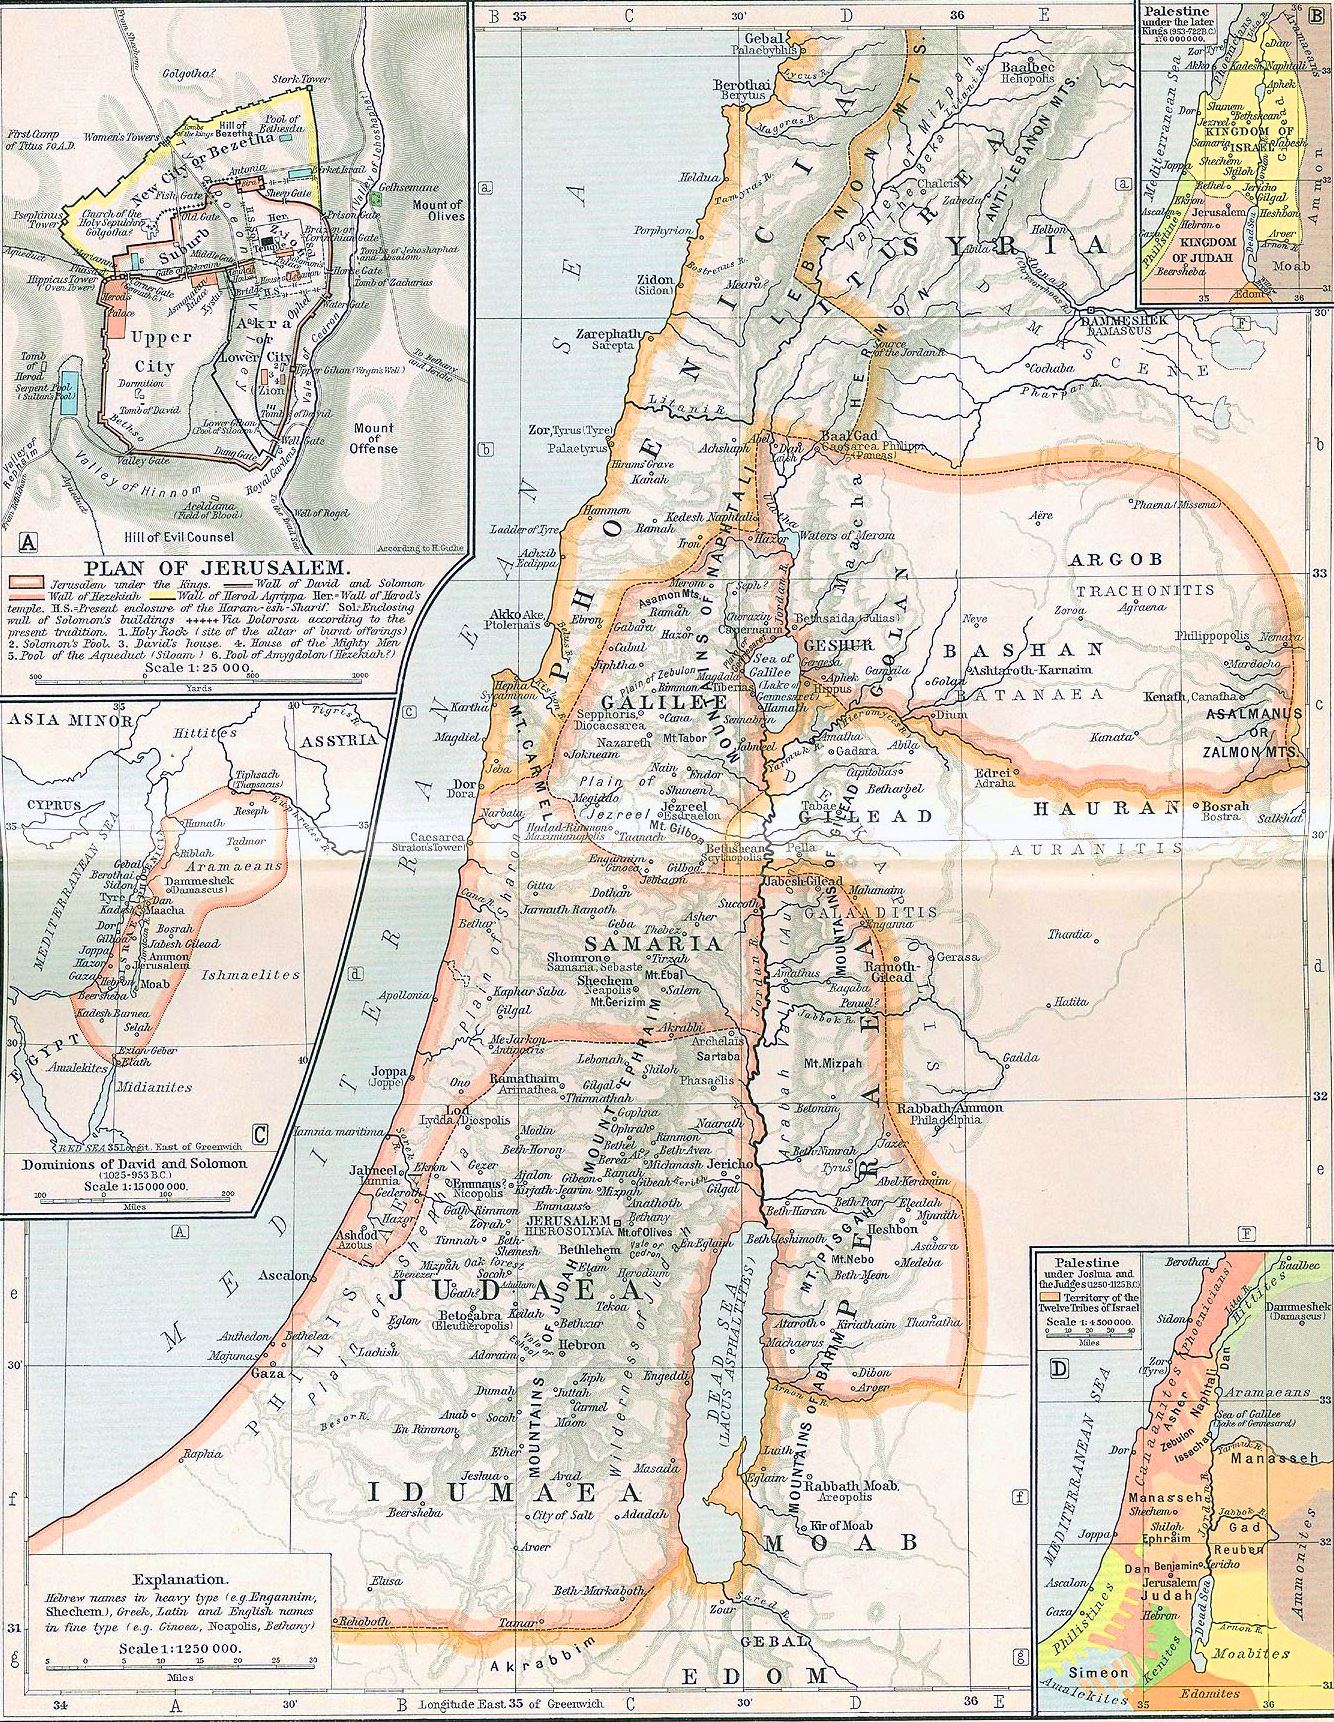 Ancient Palestine. Insets: Plan of Jerusalem. Dominions of David and Solomon (1025-953 B.C.). Palestine under the later Kings (953-722 B.C.). Palestine under Joshua and the Judges (1250-1125 B.C.)